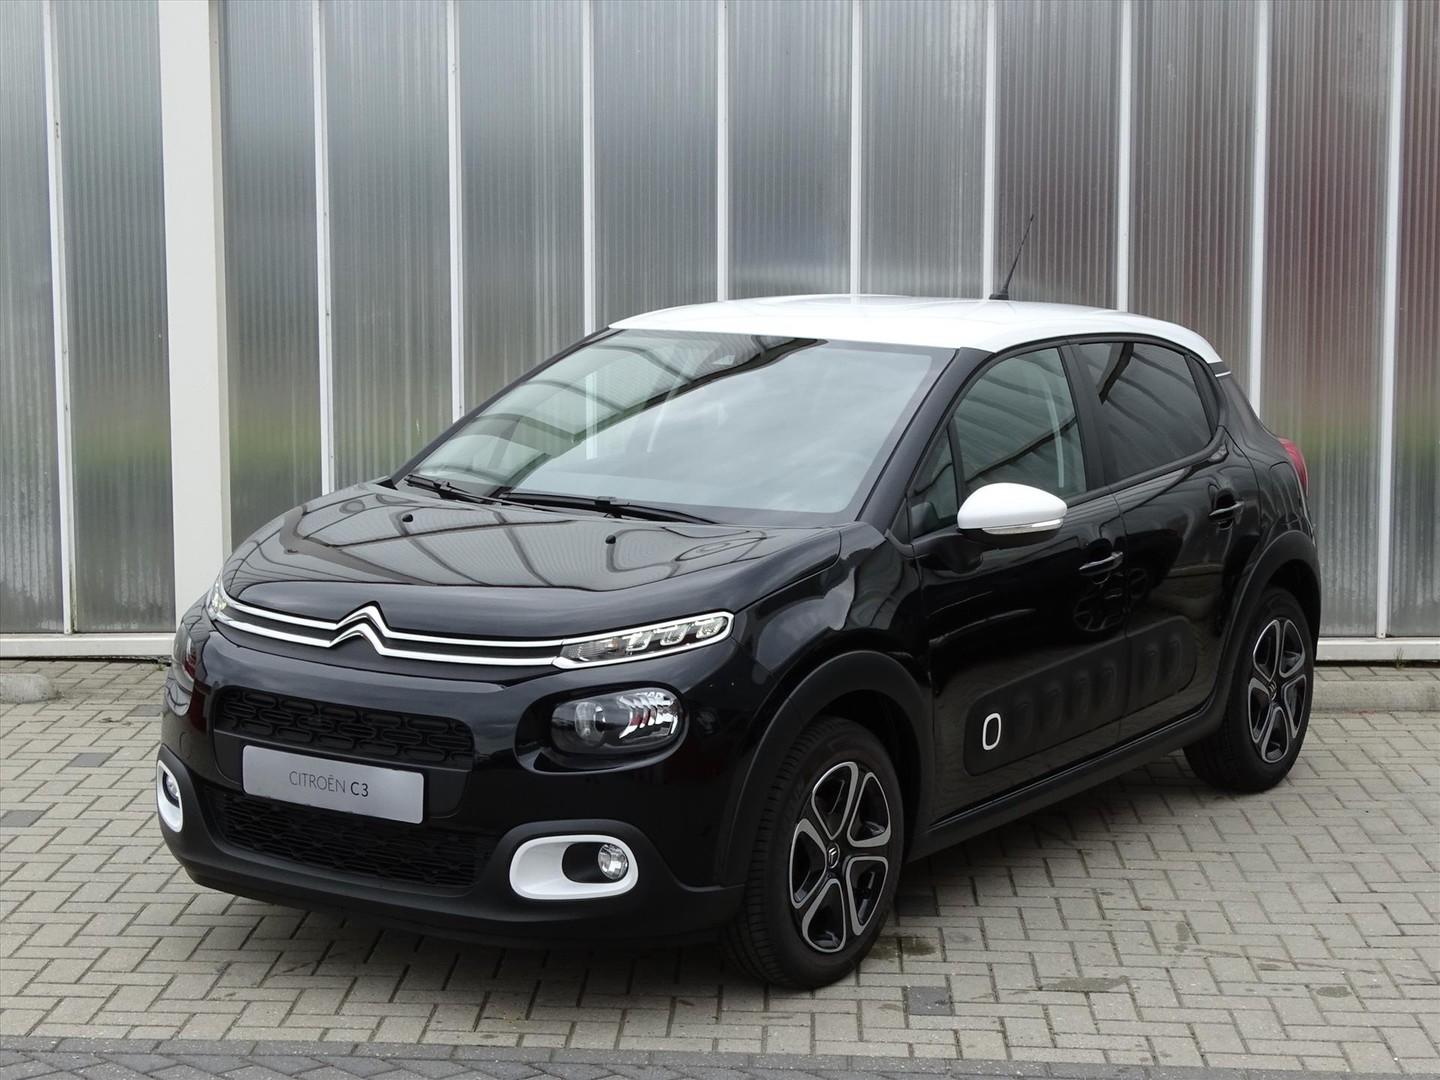 Citroën C3 Citroen c3 1.2 feel edition 82pk 299,- per maand